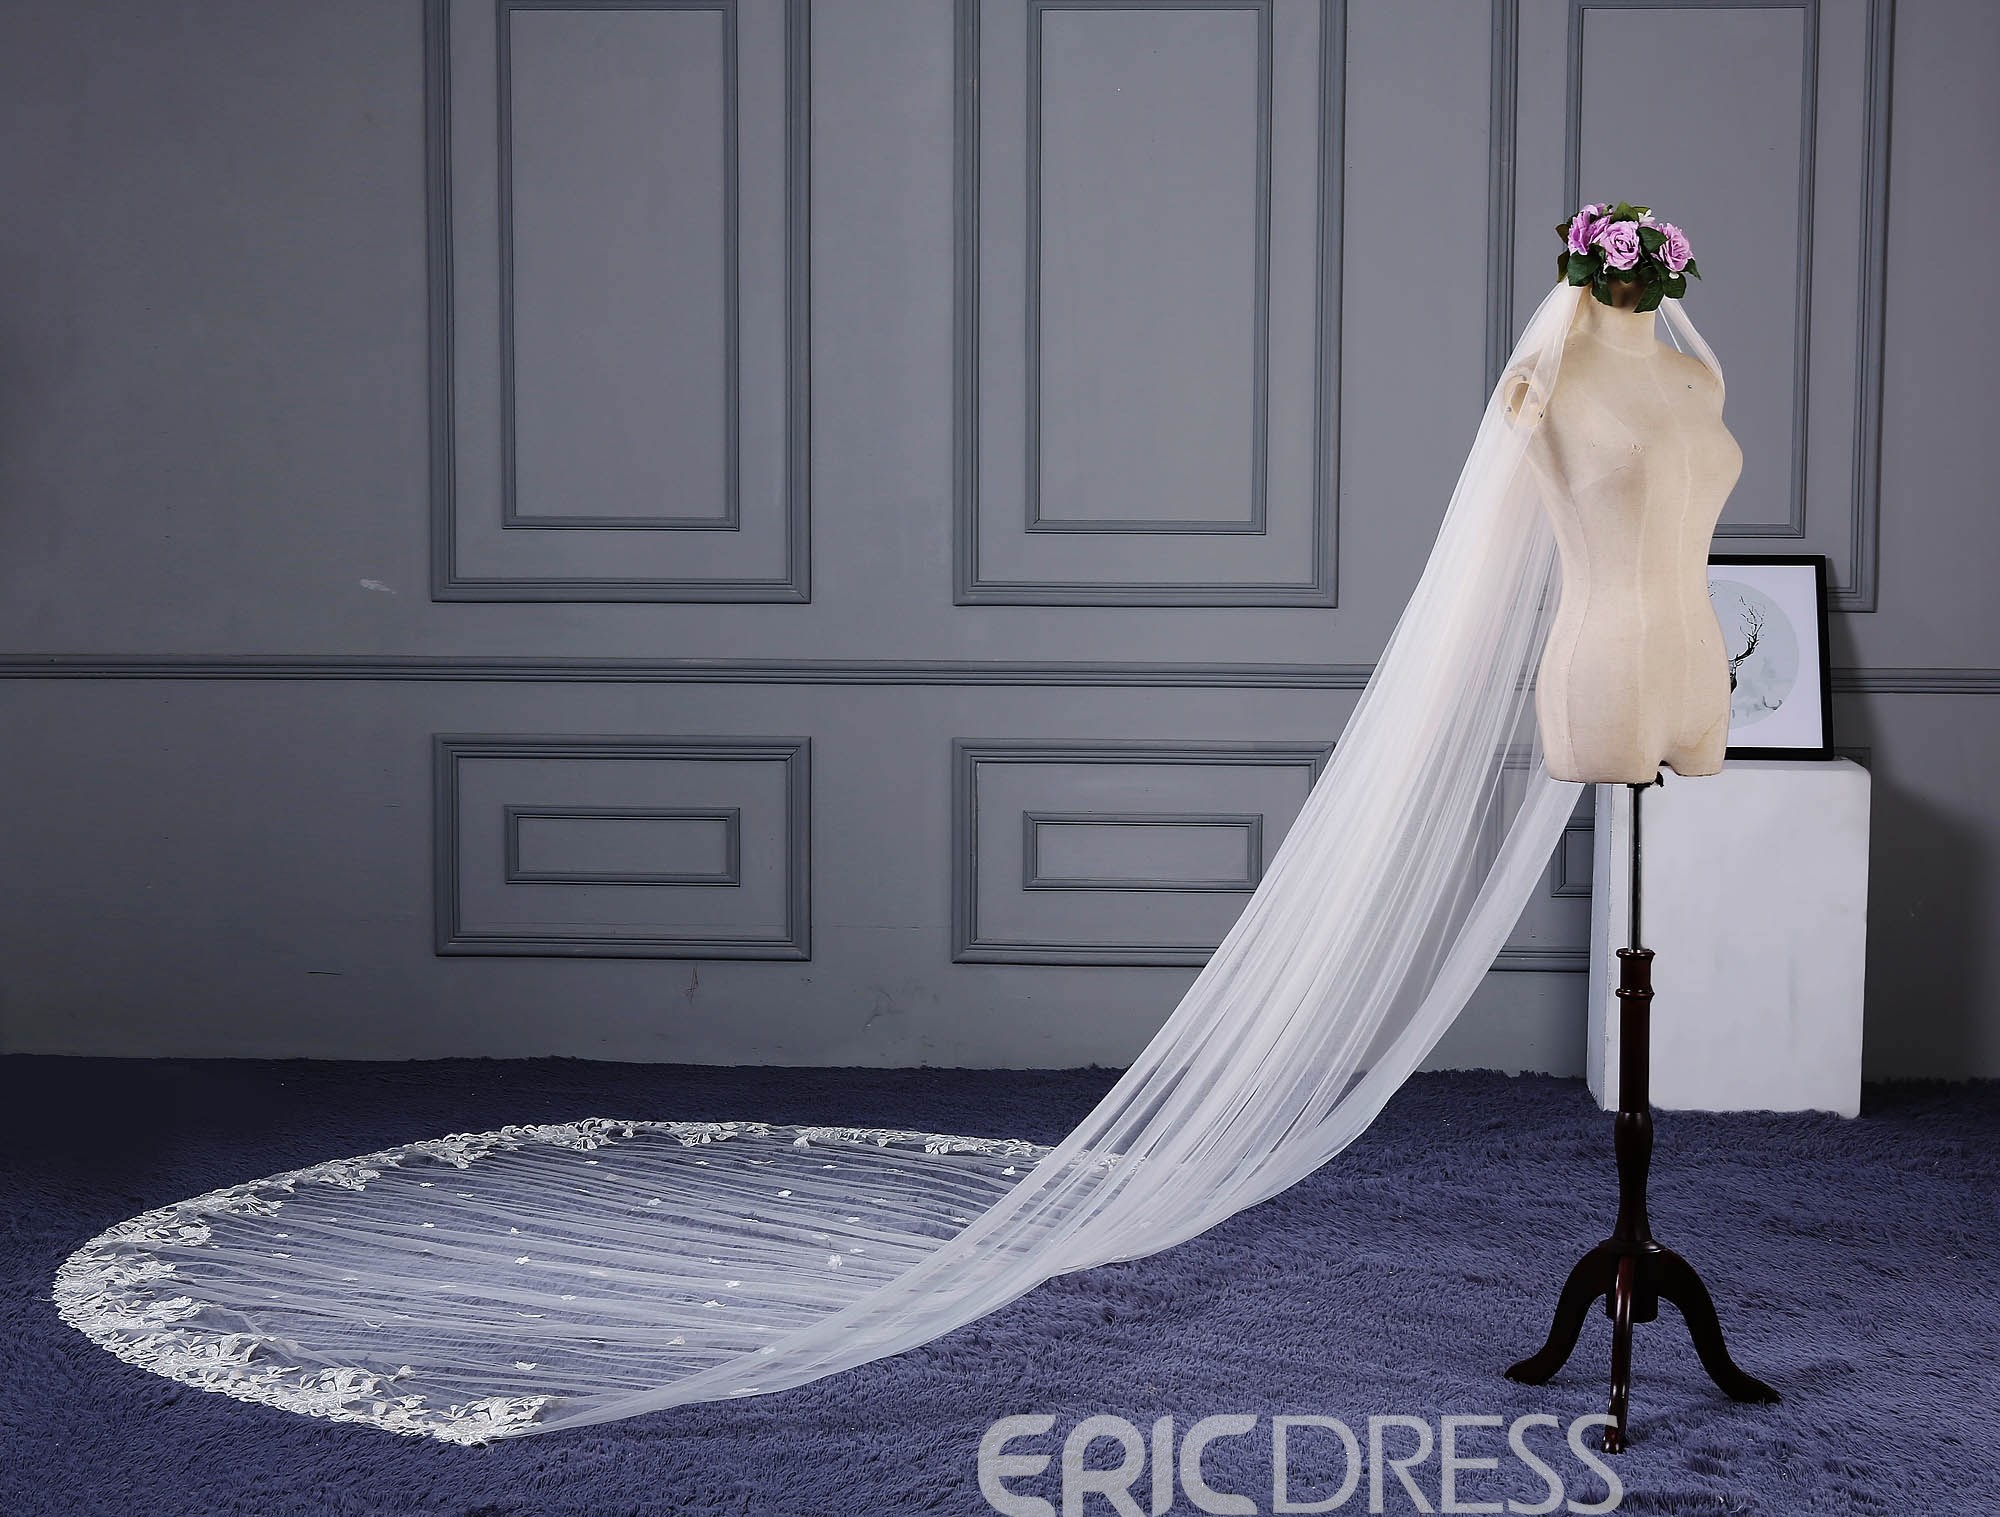 Ericdress Applique Edge Long Bridal Veil